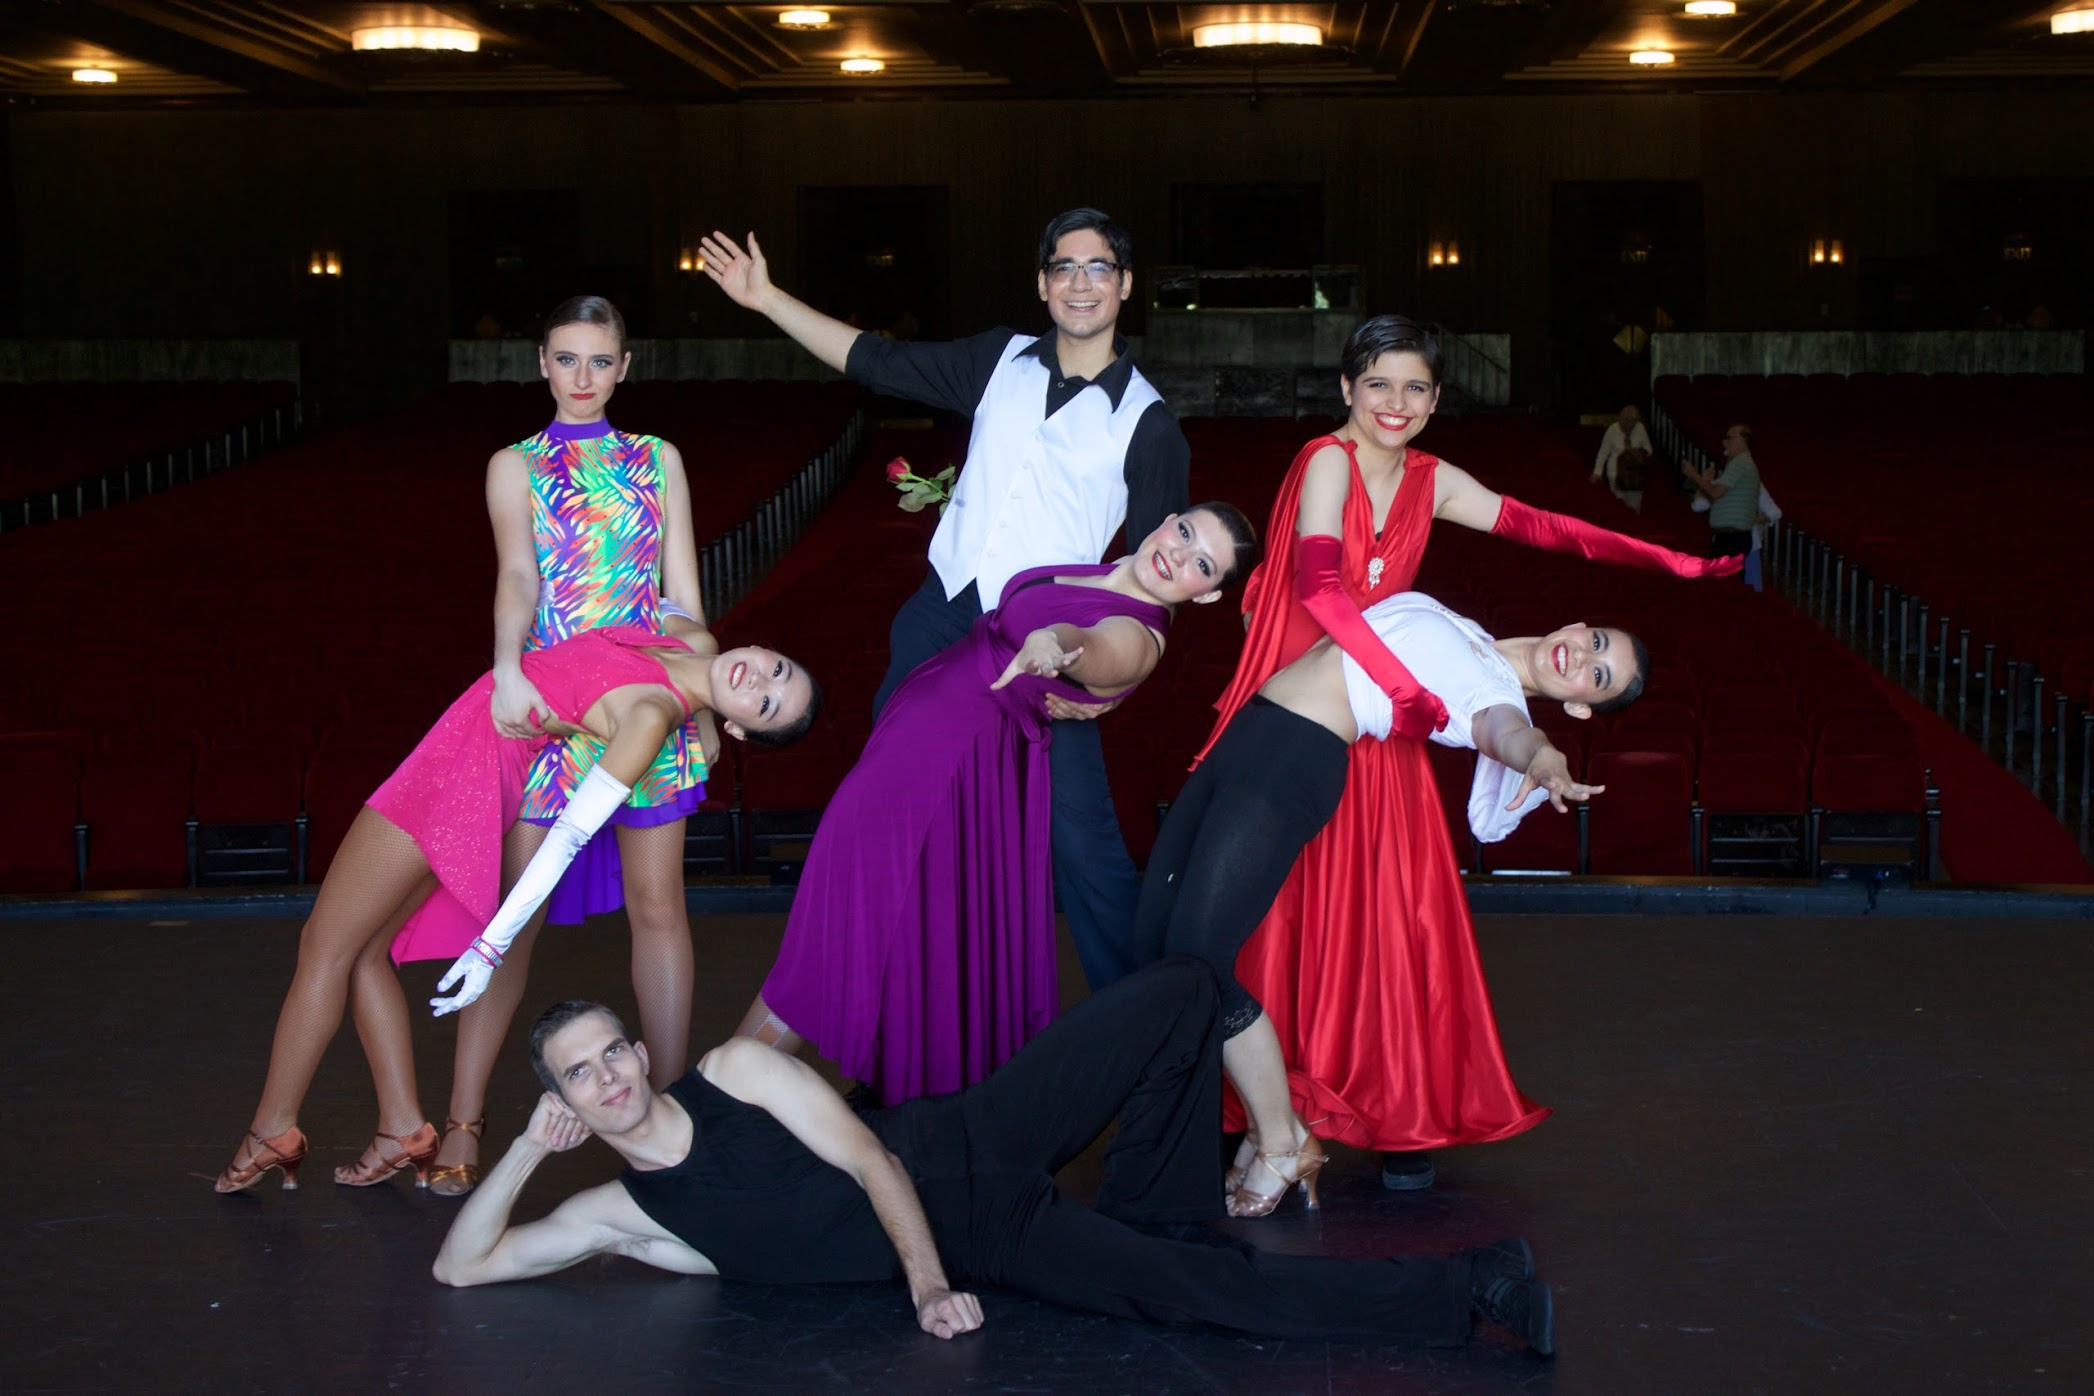 Me with my fellow officers from the Claremont Colleges Ballroom Dance Company. I'm on the right, wearing a red dress.